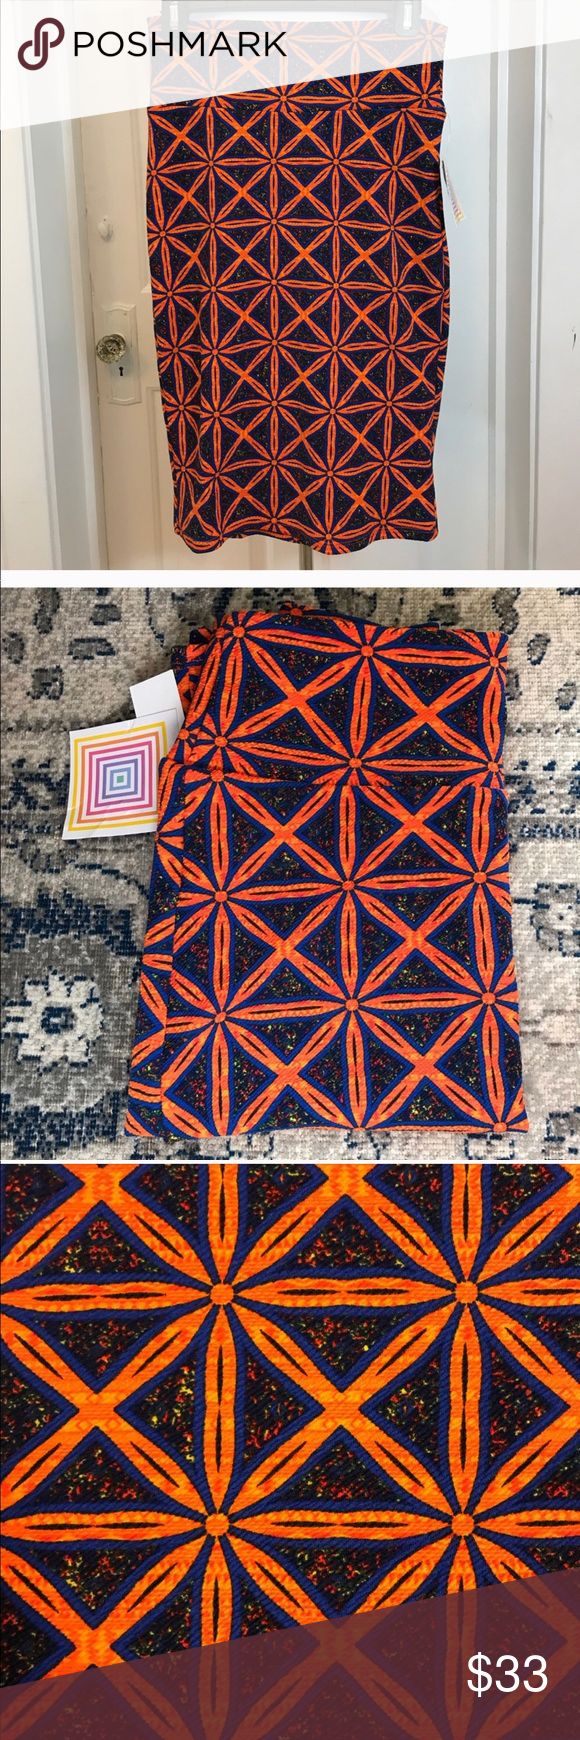 LULAROE: Multi-color Geometric XS CASSIE Skirt LULAROE. Stunning orange and blue geometric print XS Cassie Skirt! New with tags and perfect for a gift or for personal use! Please ask questions prior to purchasing and leaving a less than five star review. Your satisfaction is very important to me. Bundle up and make an offer! ❤️ LuLaRoe Skirts